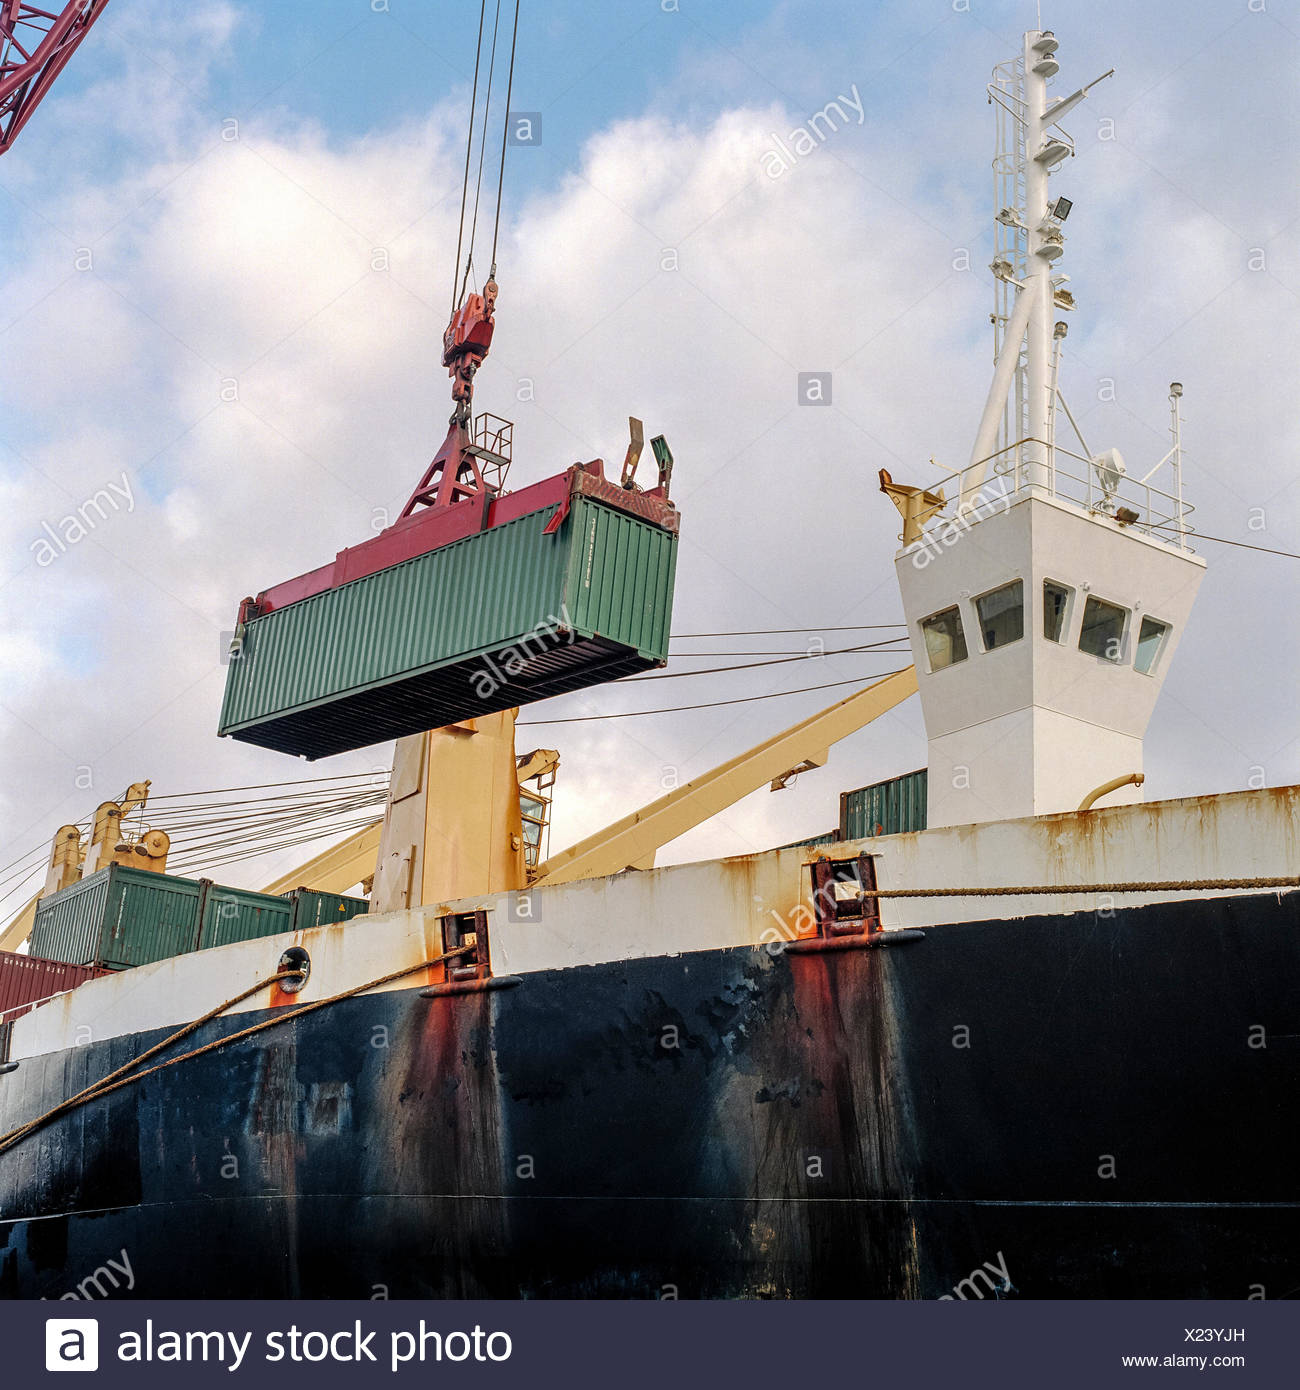 Shipping container being lowered by crane onto ship in port - Stock Image